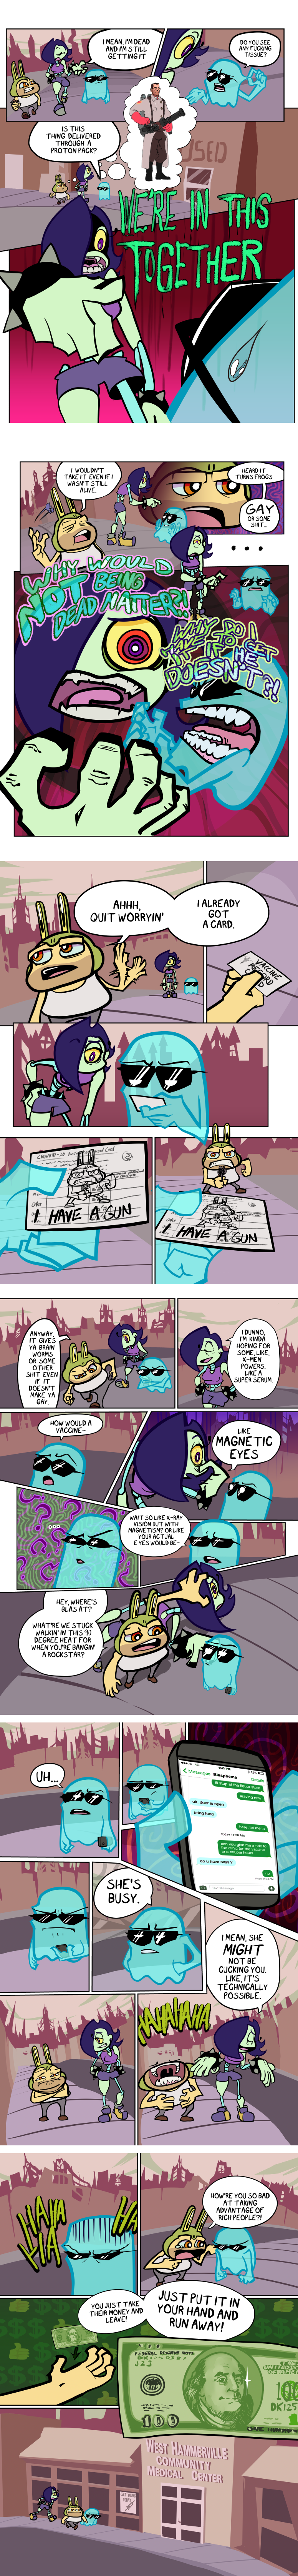 Surf Ghost page 3-8